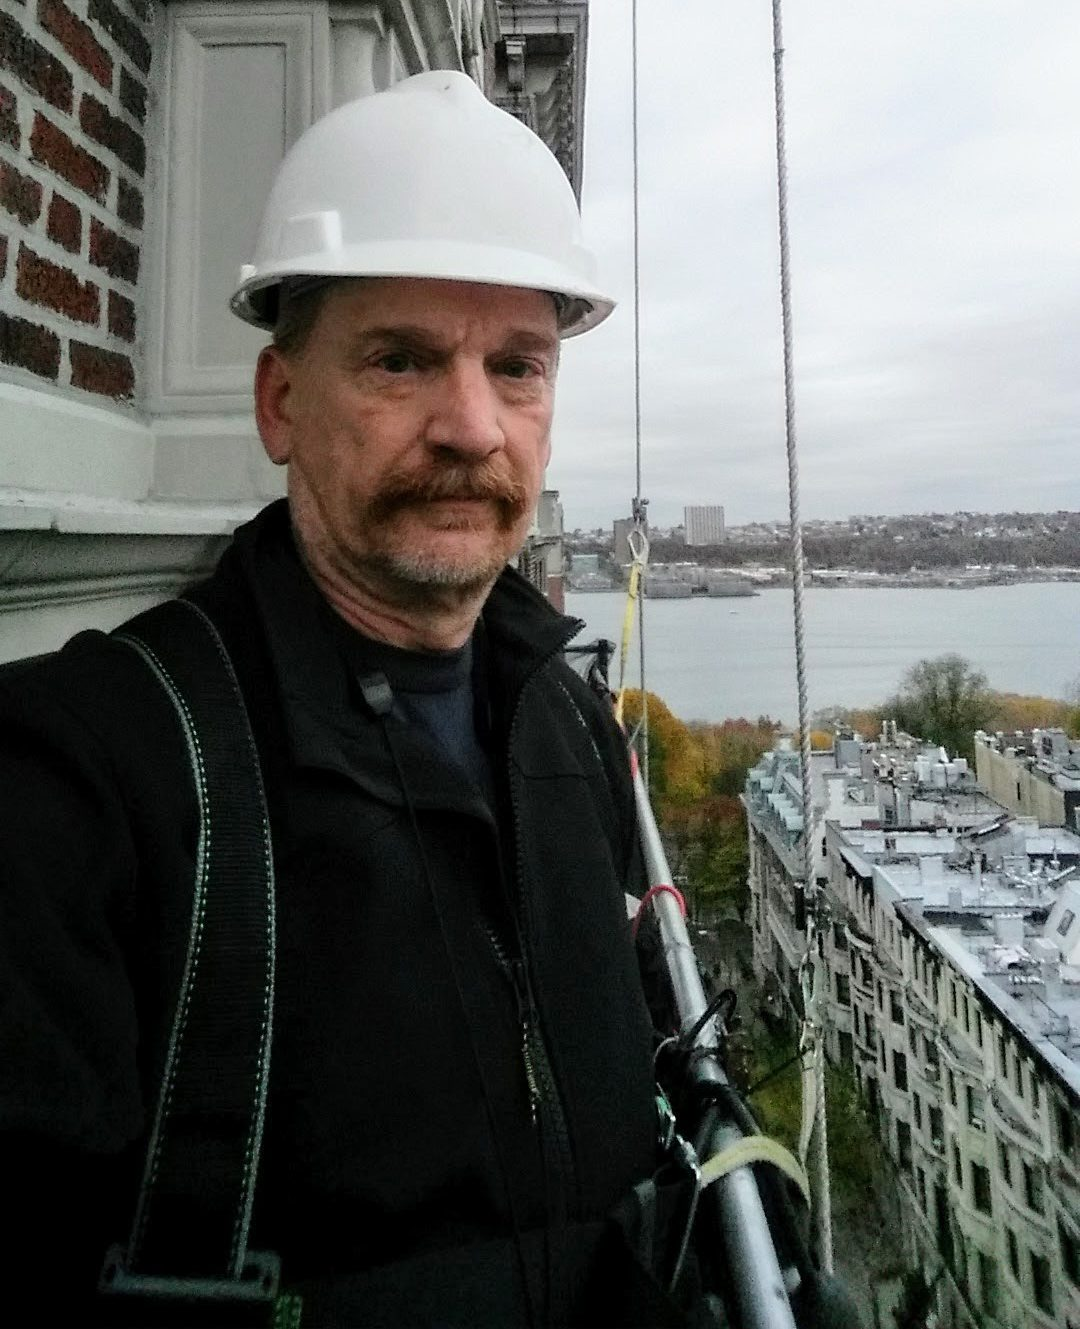 Ron Mitkowski stands on a scaffold suspended from a building.